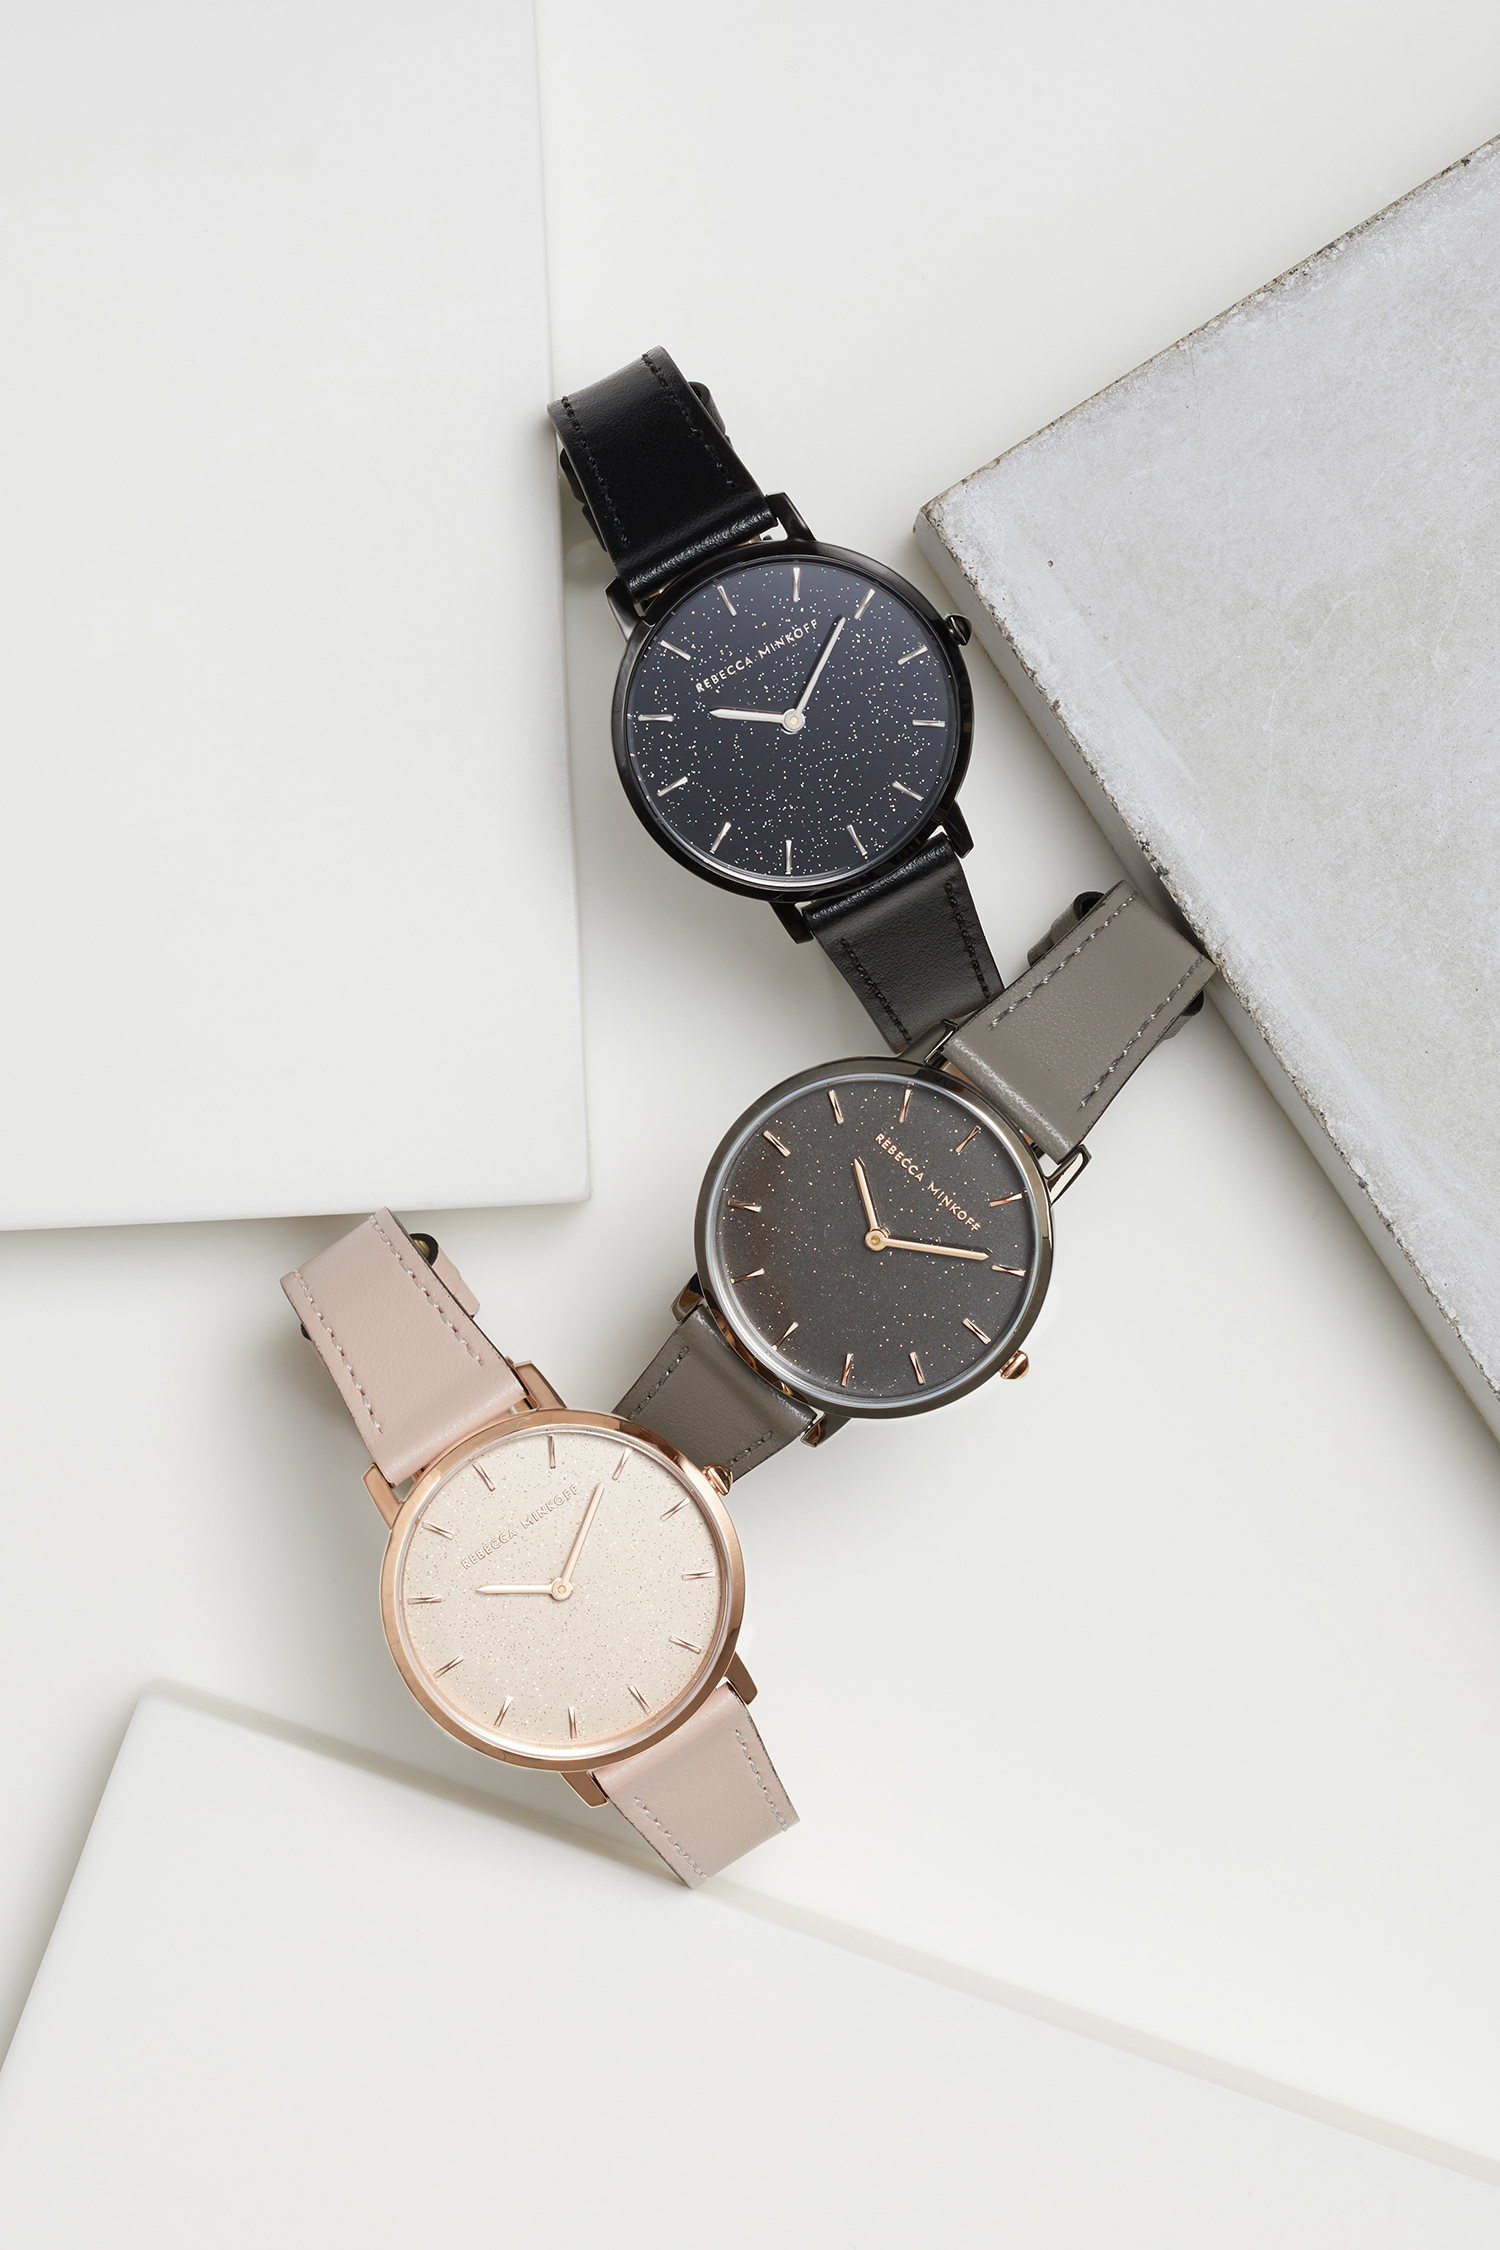 Jewelry + Timepieces -